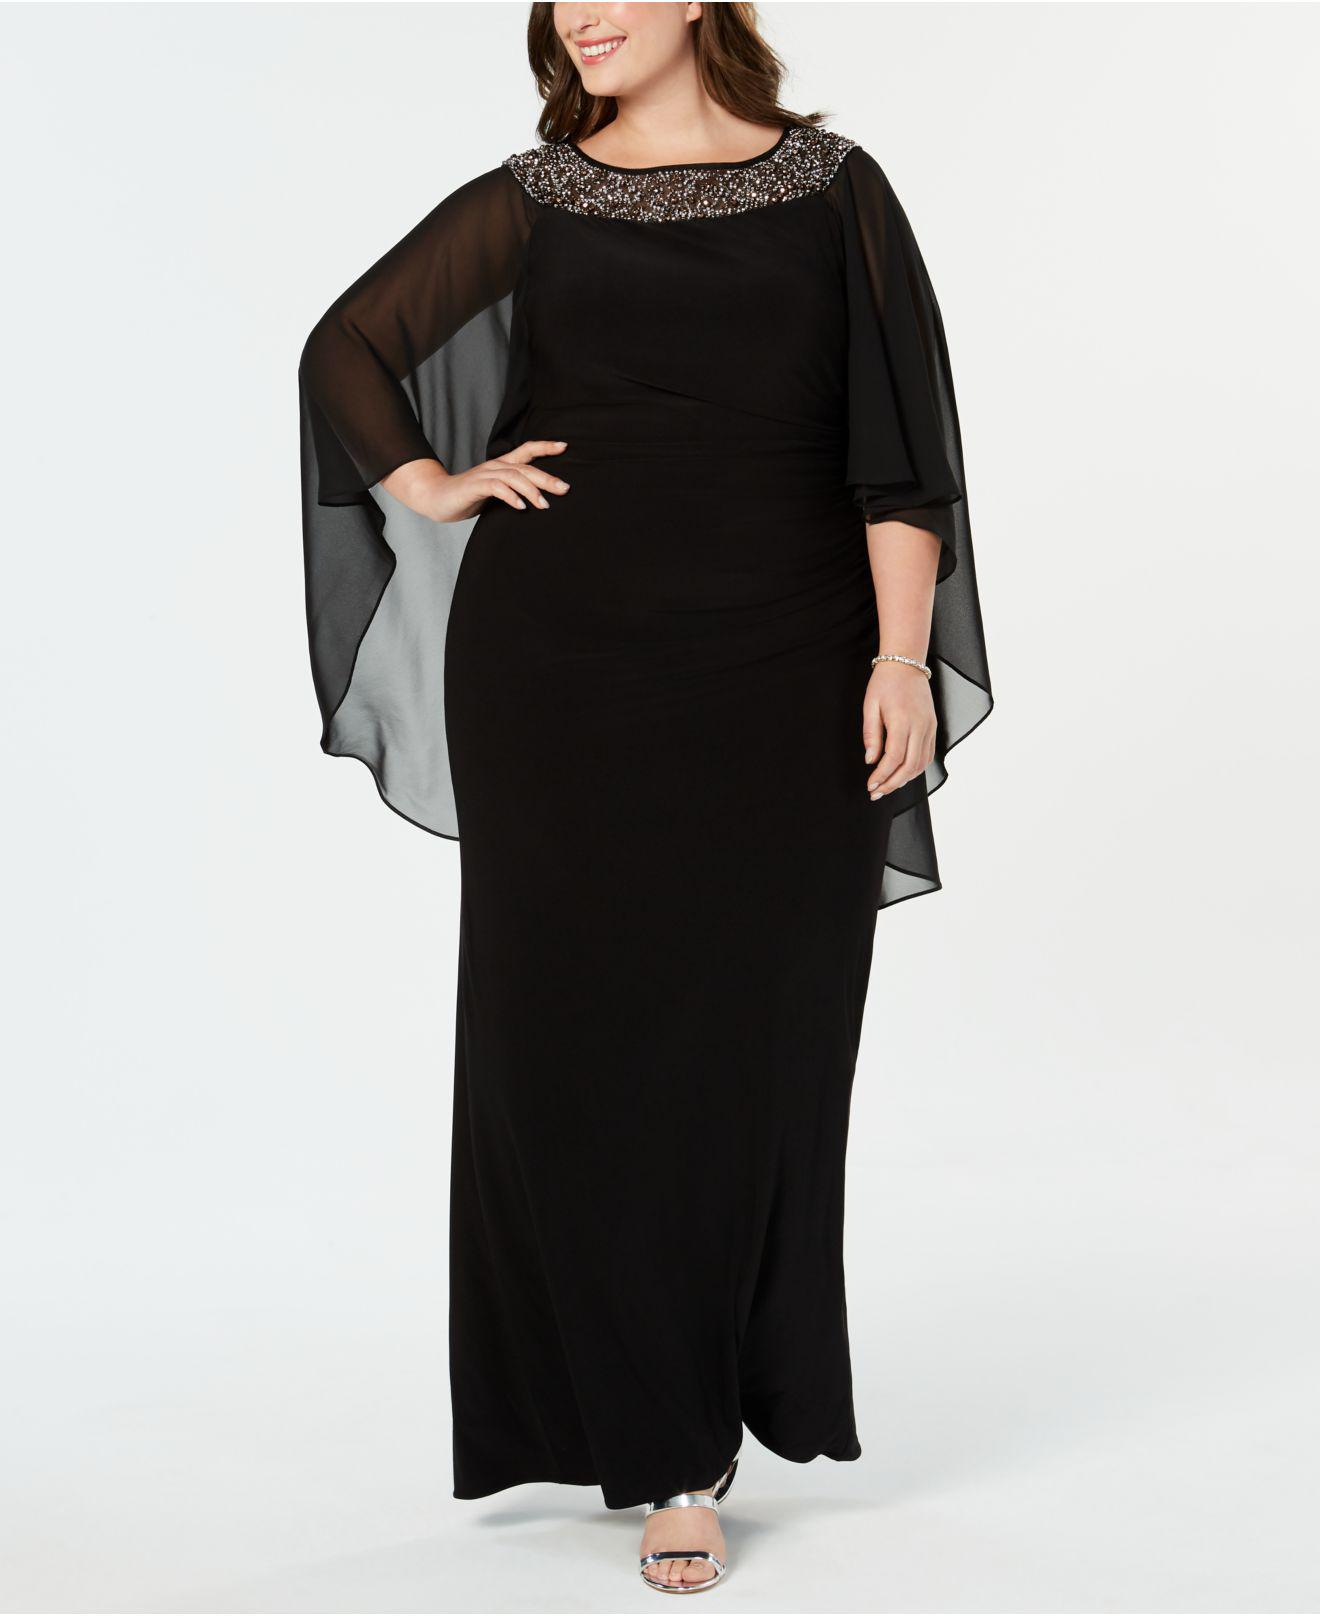 e85e6489348b9 Lyst - Xscape Plus Size Chiffon-cape Embellished Gown in Black